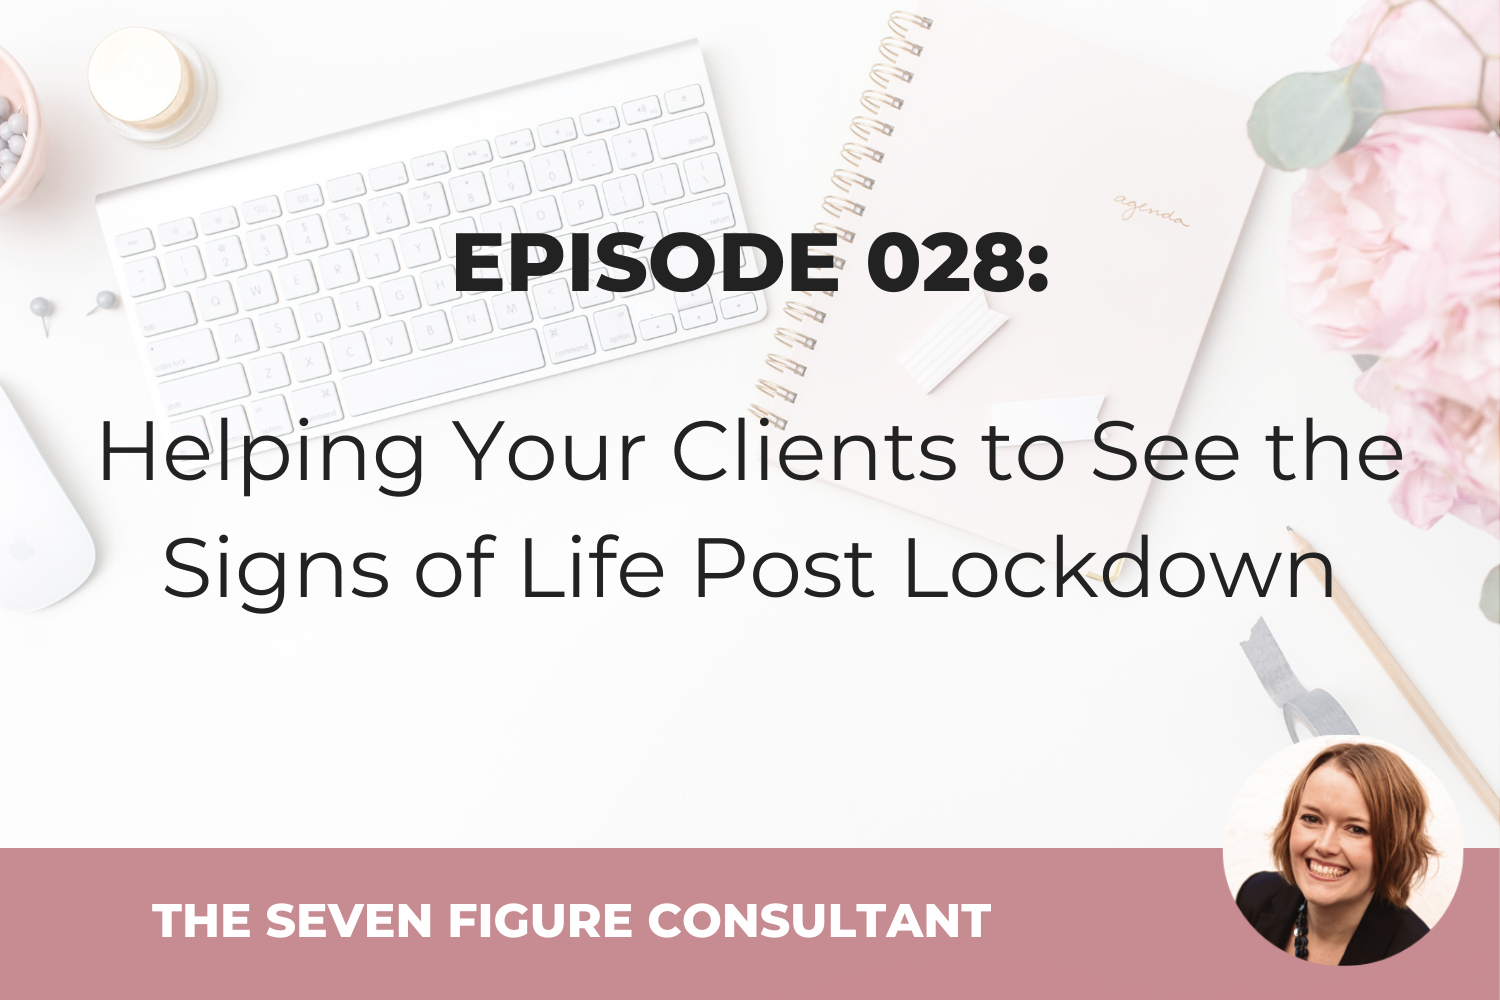 Episode 028: Helping Your Clients to See the Signs of Life Post Lockdown